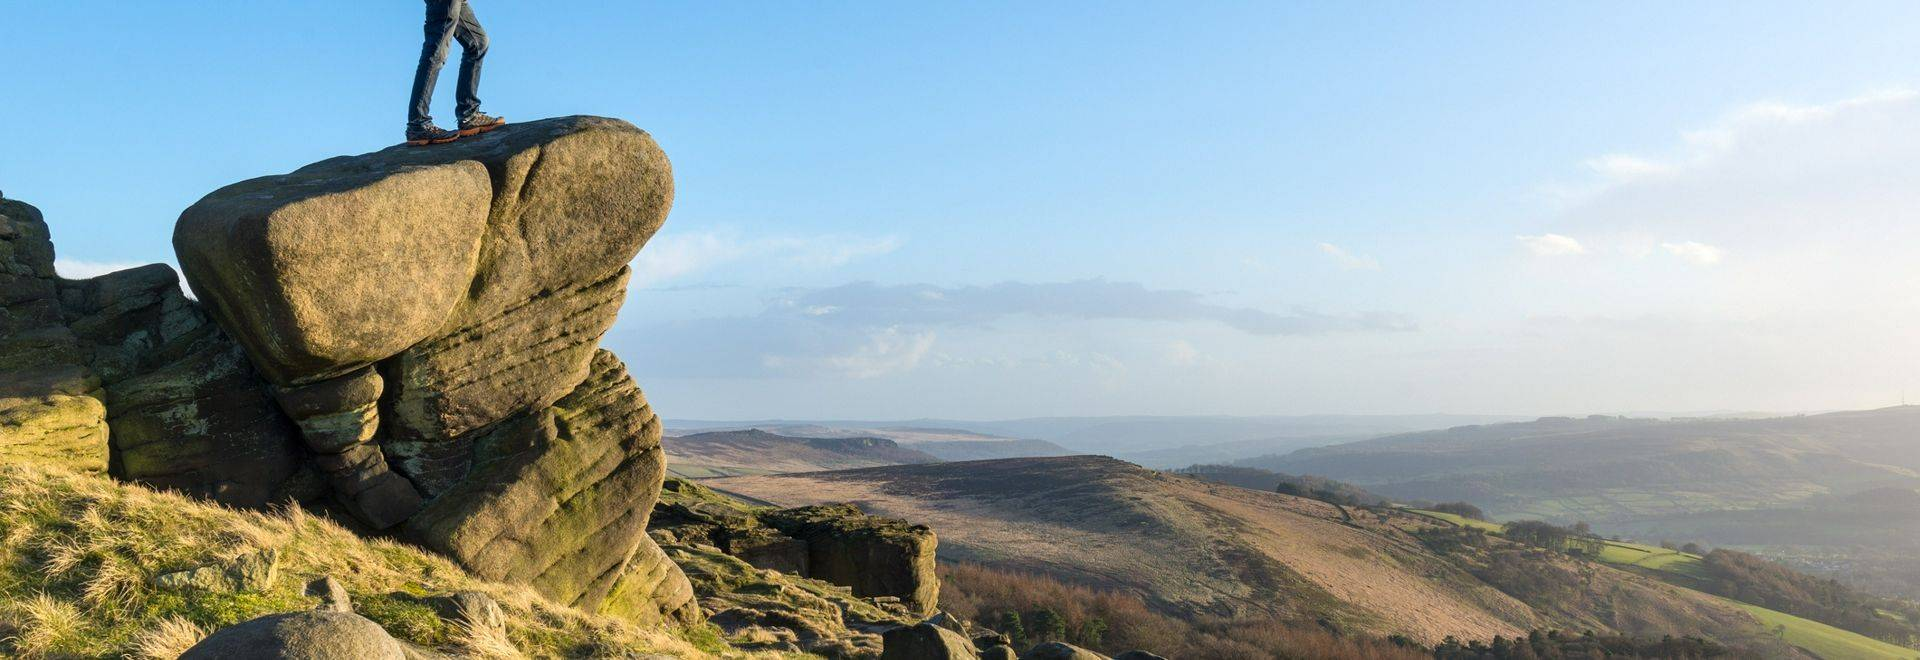 Young male hiker stood on rocky outcrop, Stanage Edge, Peak District.